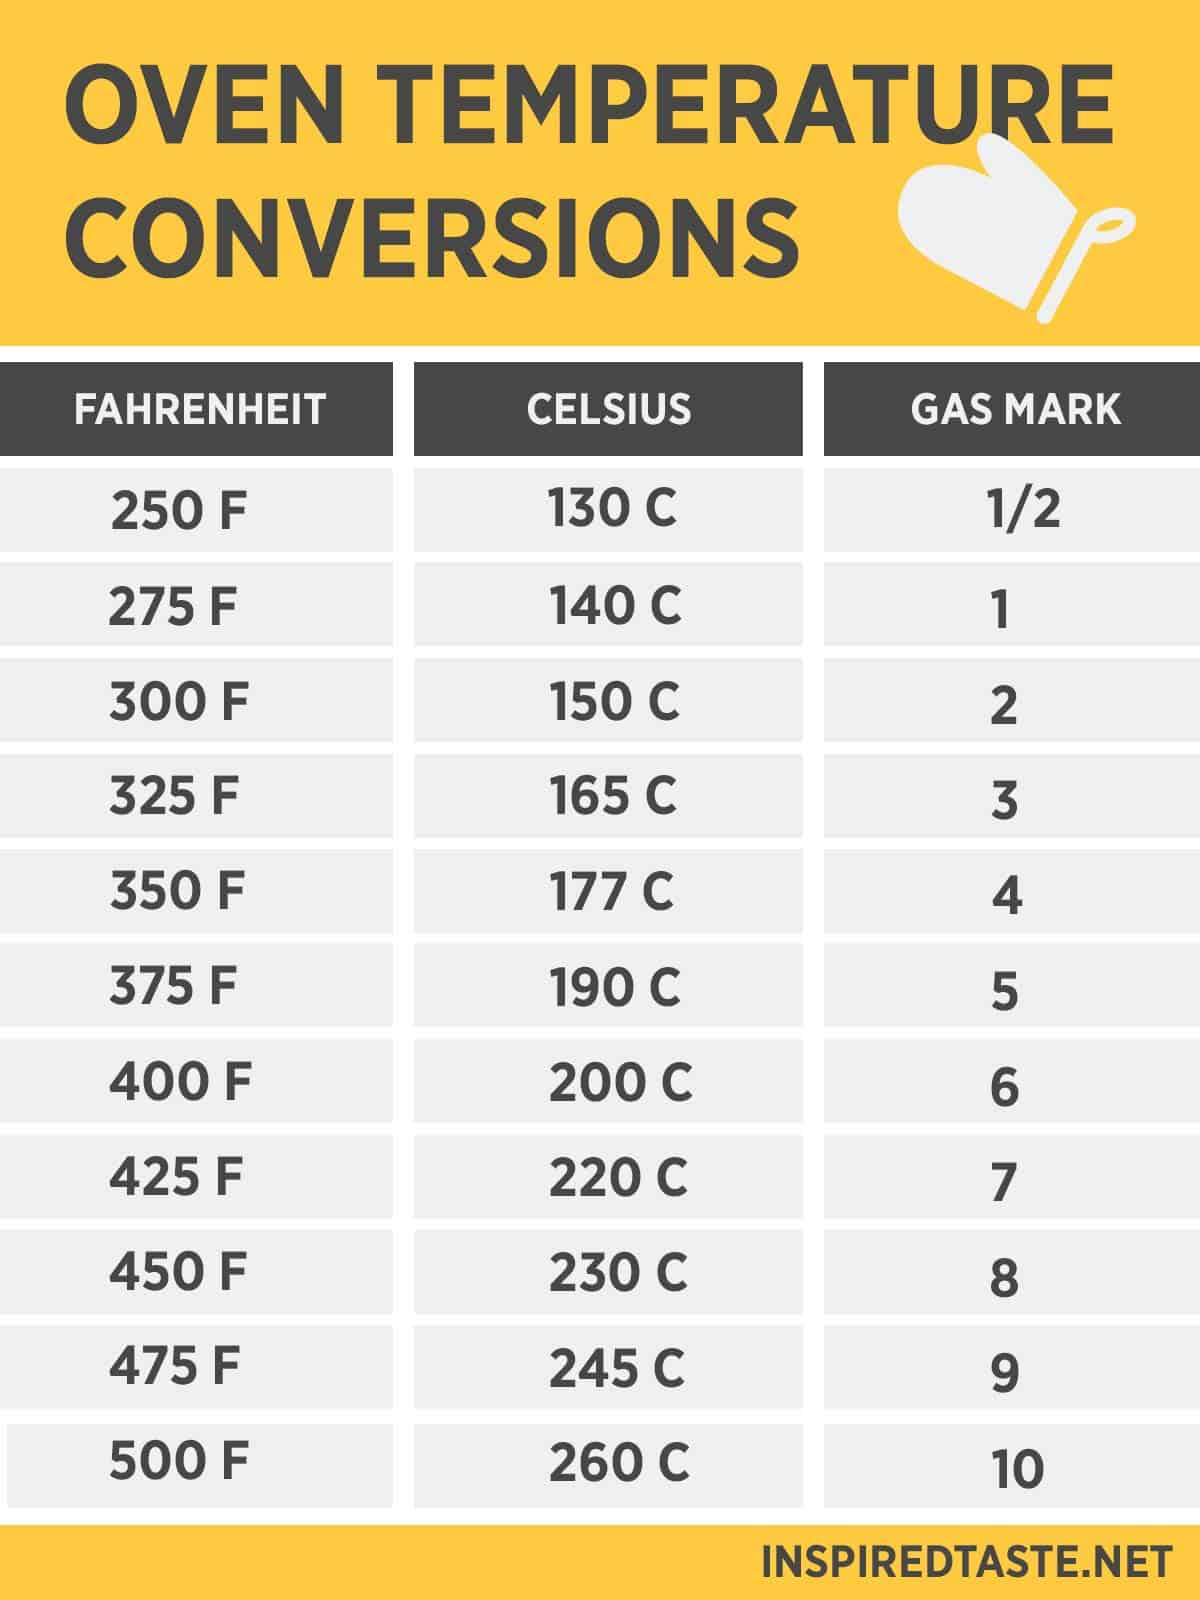 Oven Temperature Conversion Chart Fahrenheit Celsius And Gas Mark